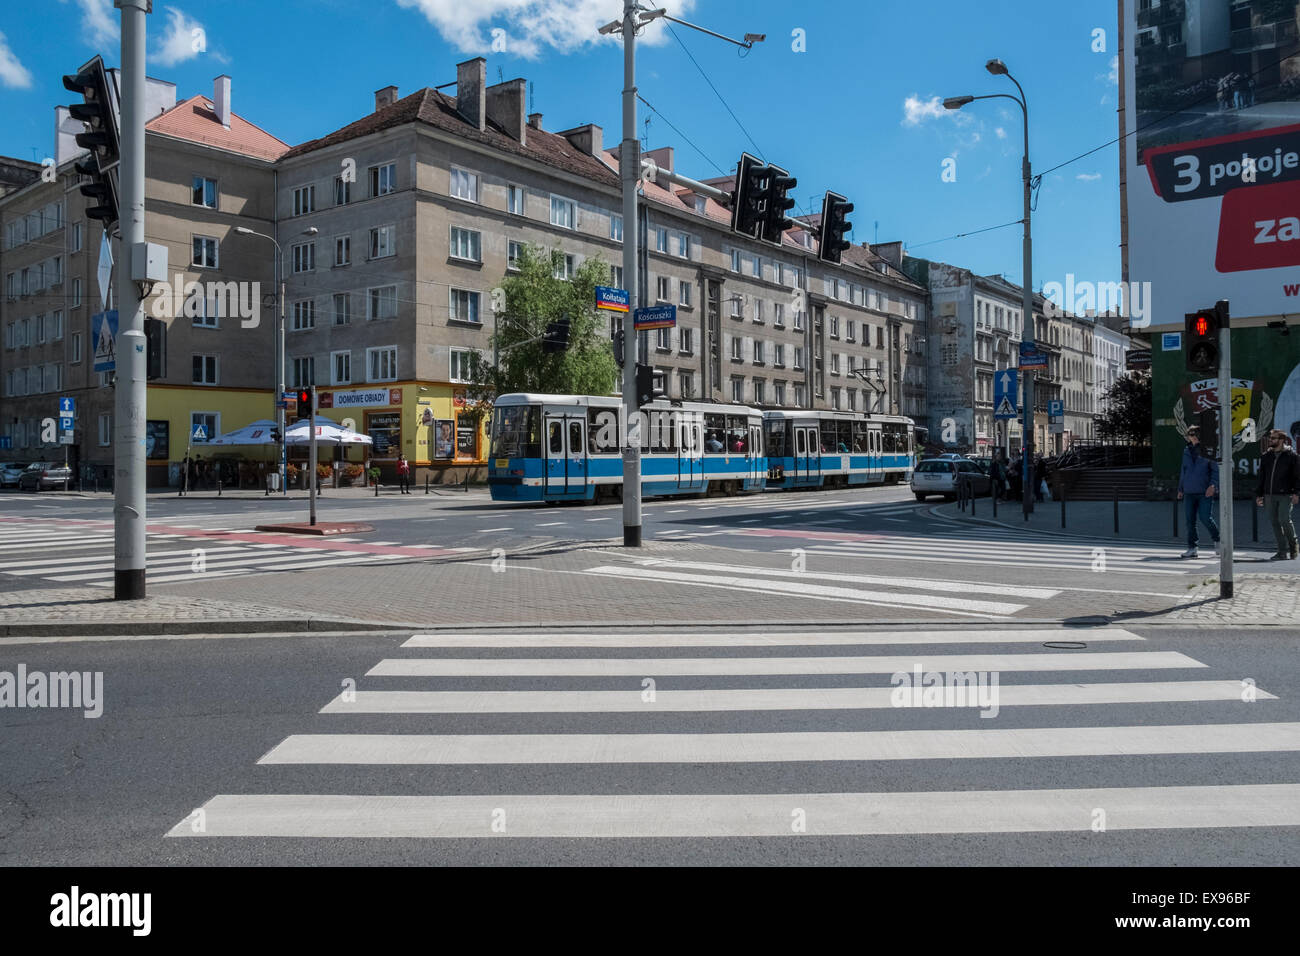 Pedestrian zebra crossing at busy tram and road intersection, Wroclaw, Poland Stock Photo